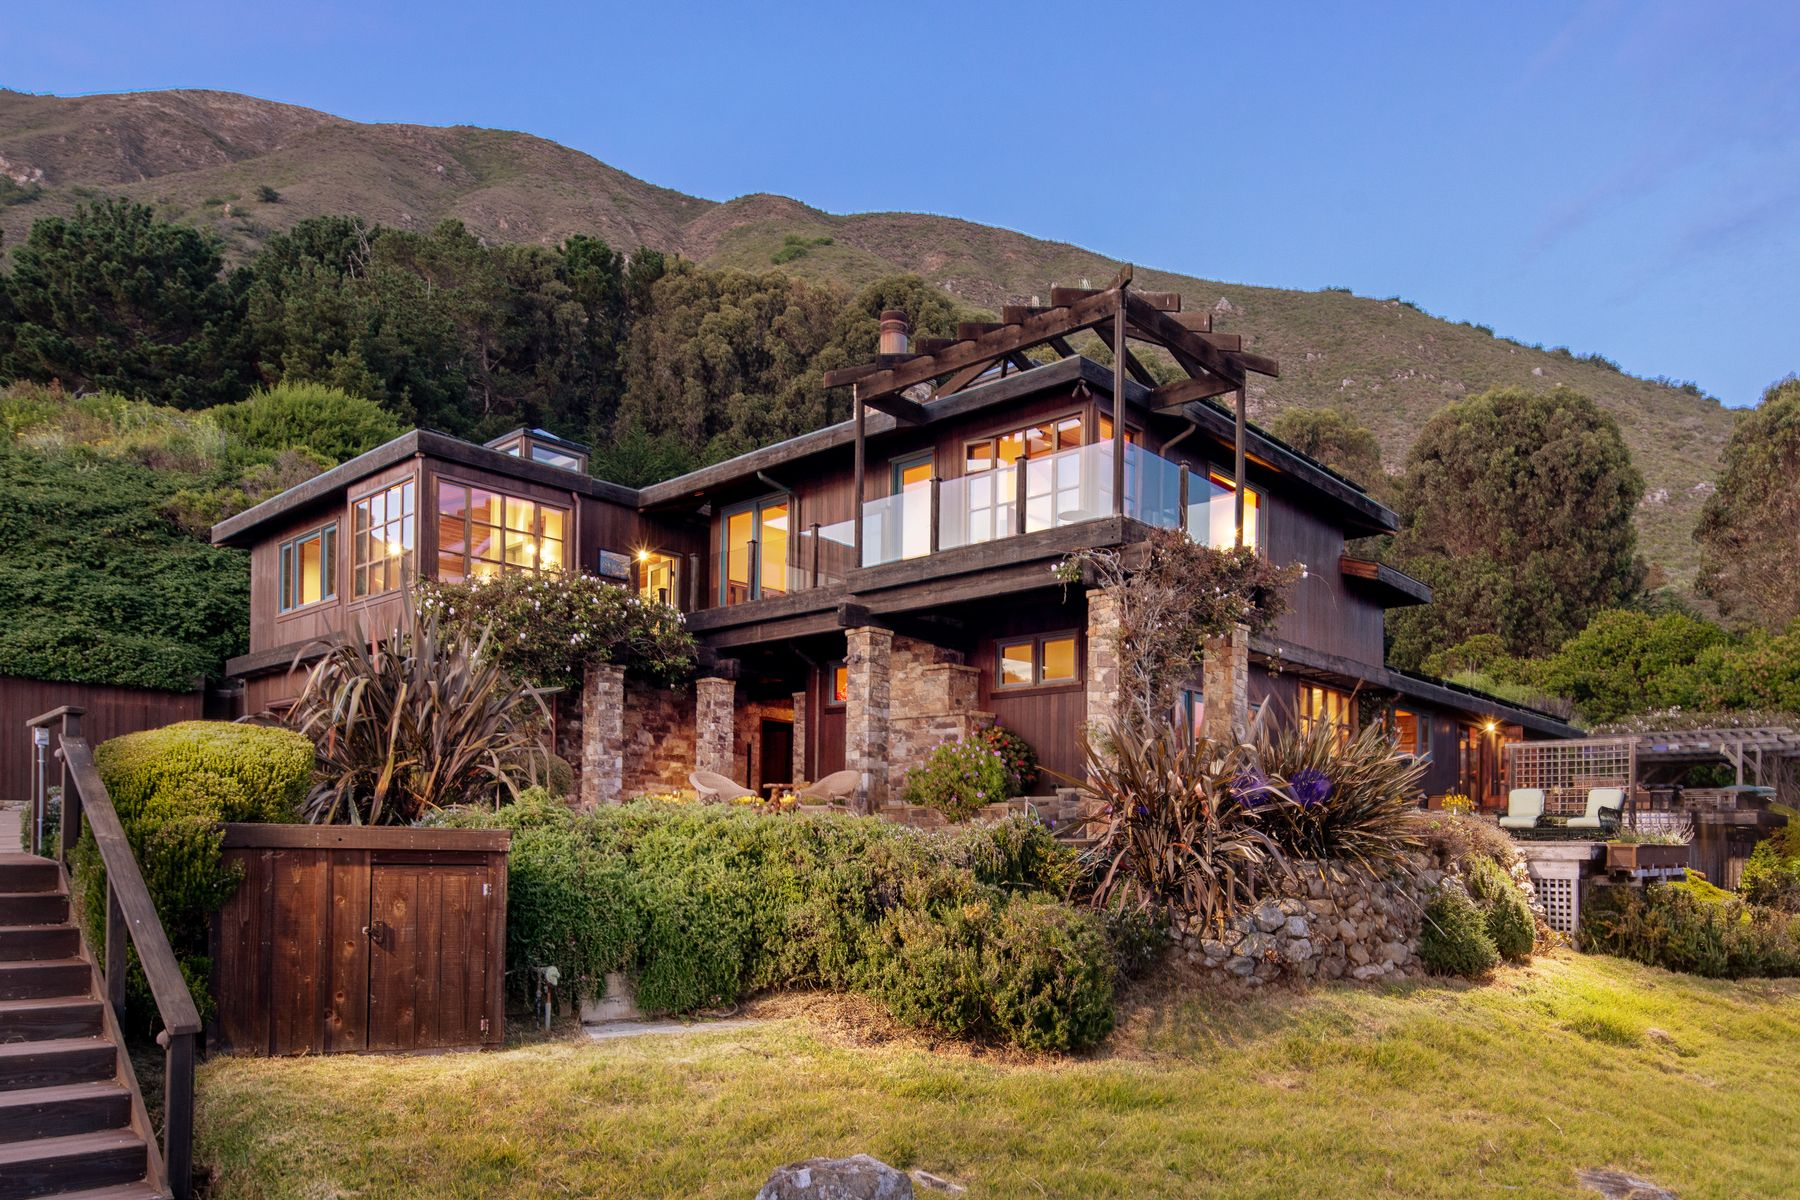 Single Family Homes for Sale at Magnificent Big Sur Ocean Front Property 54800 Highway 1 Big Sur, California 93920 United States